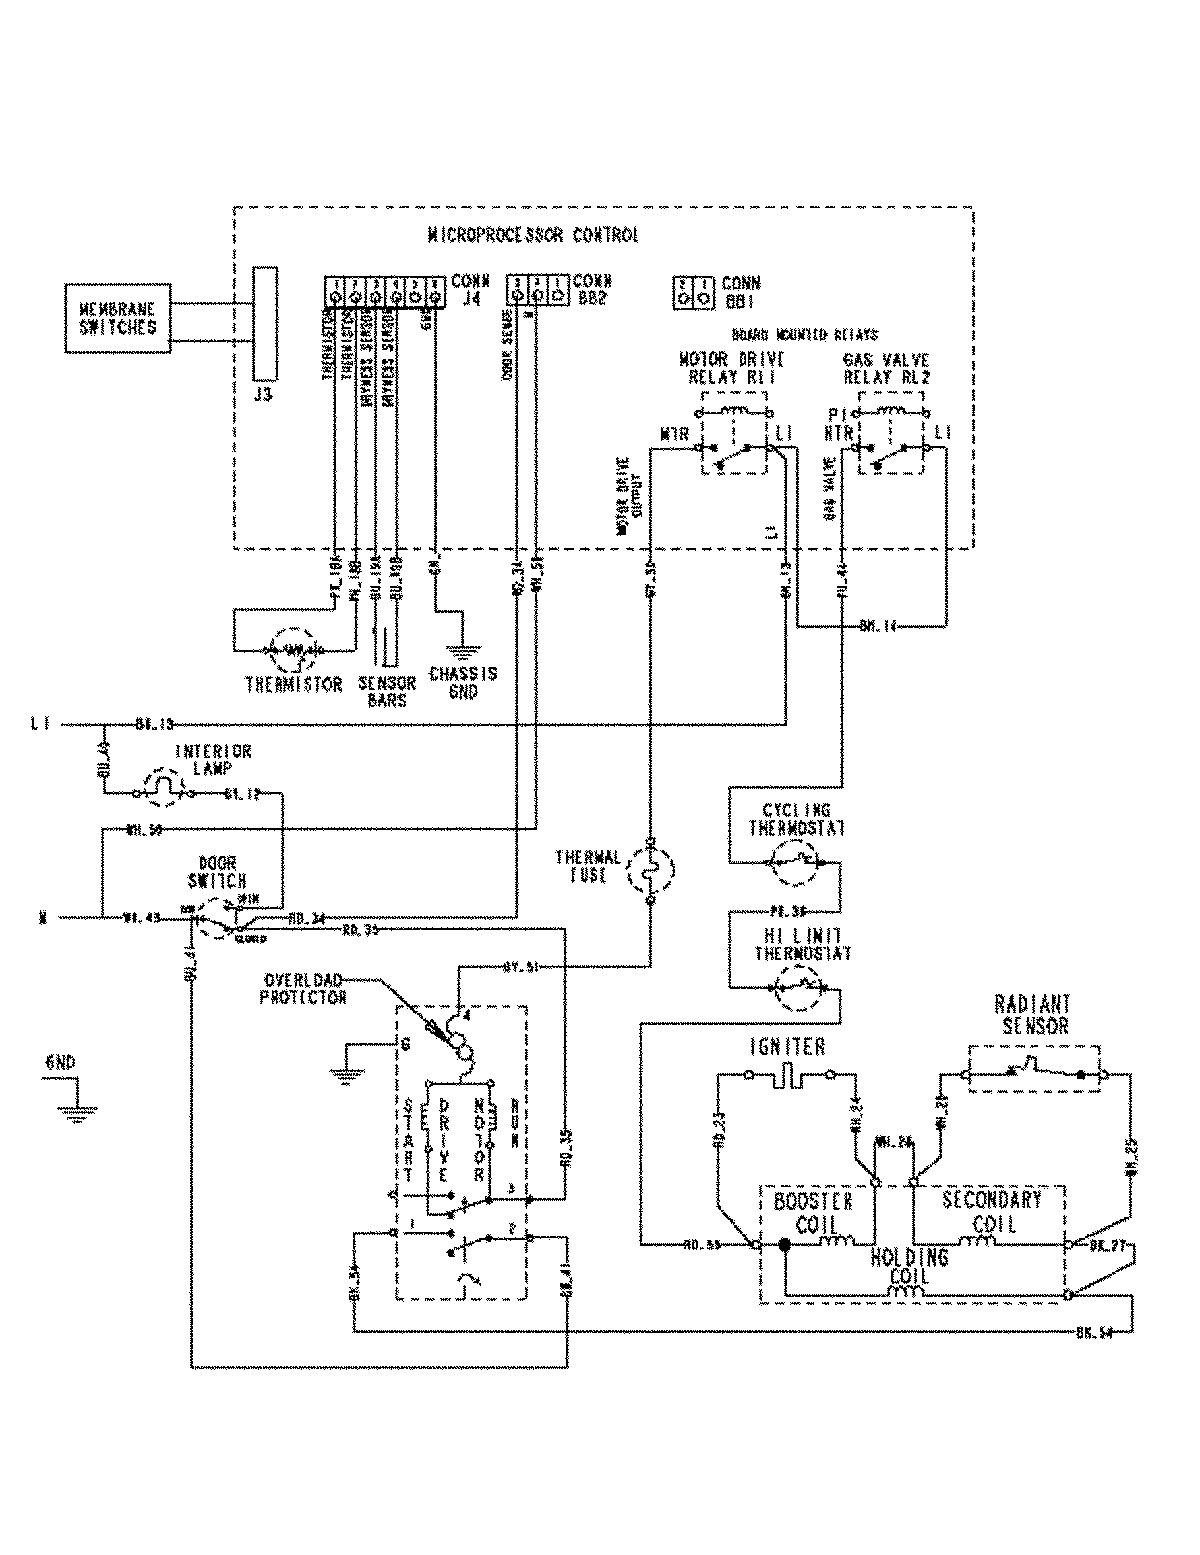 electric dryer wiring diagram mercedes w211 diagrams information and parts list for model